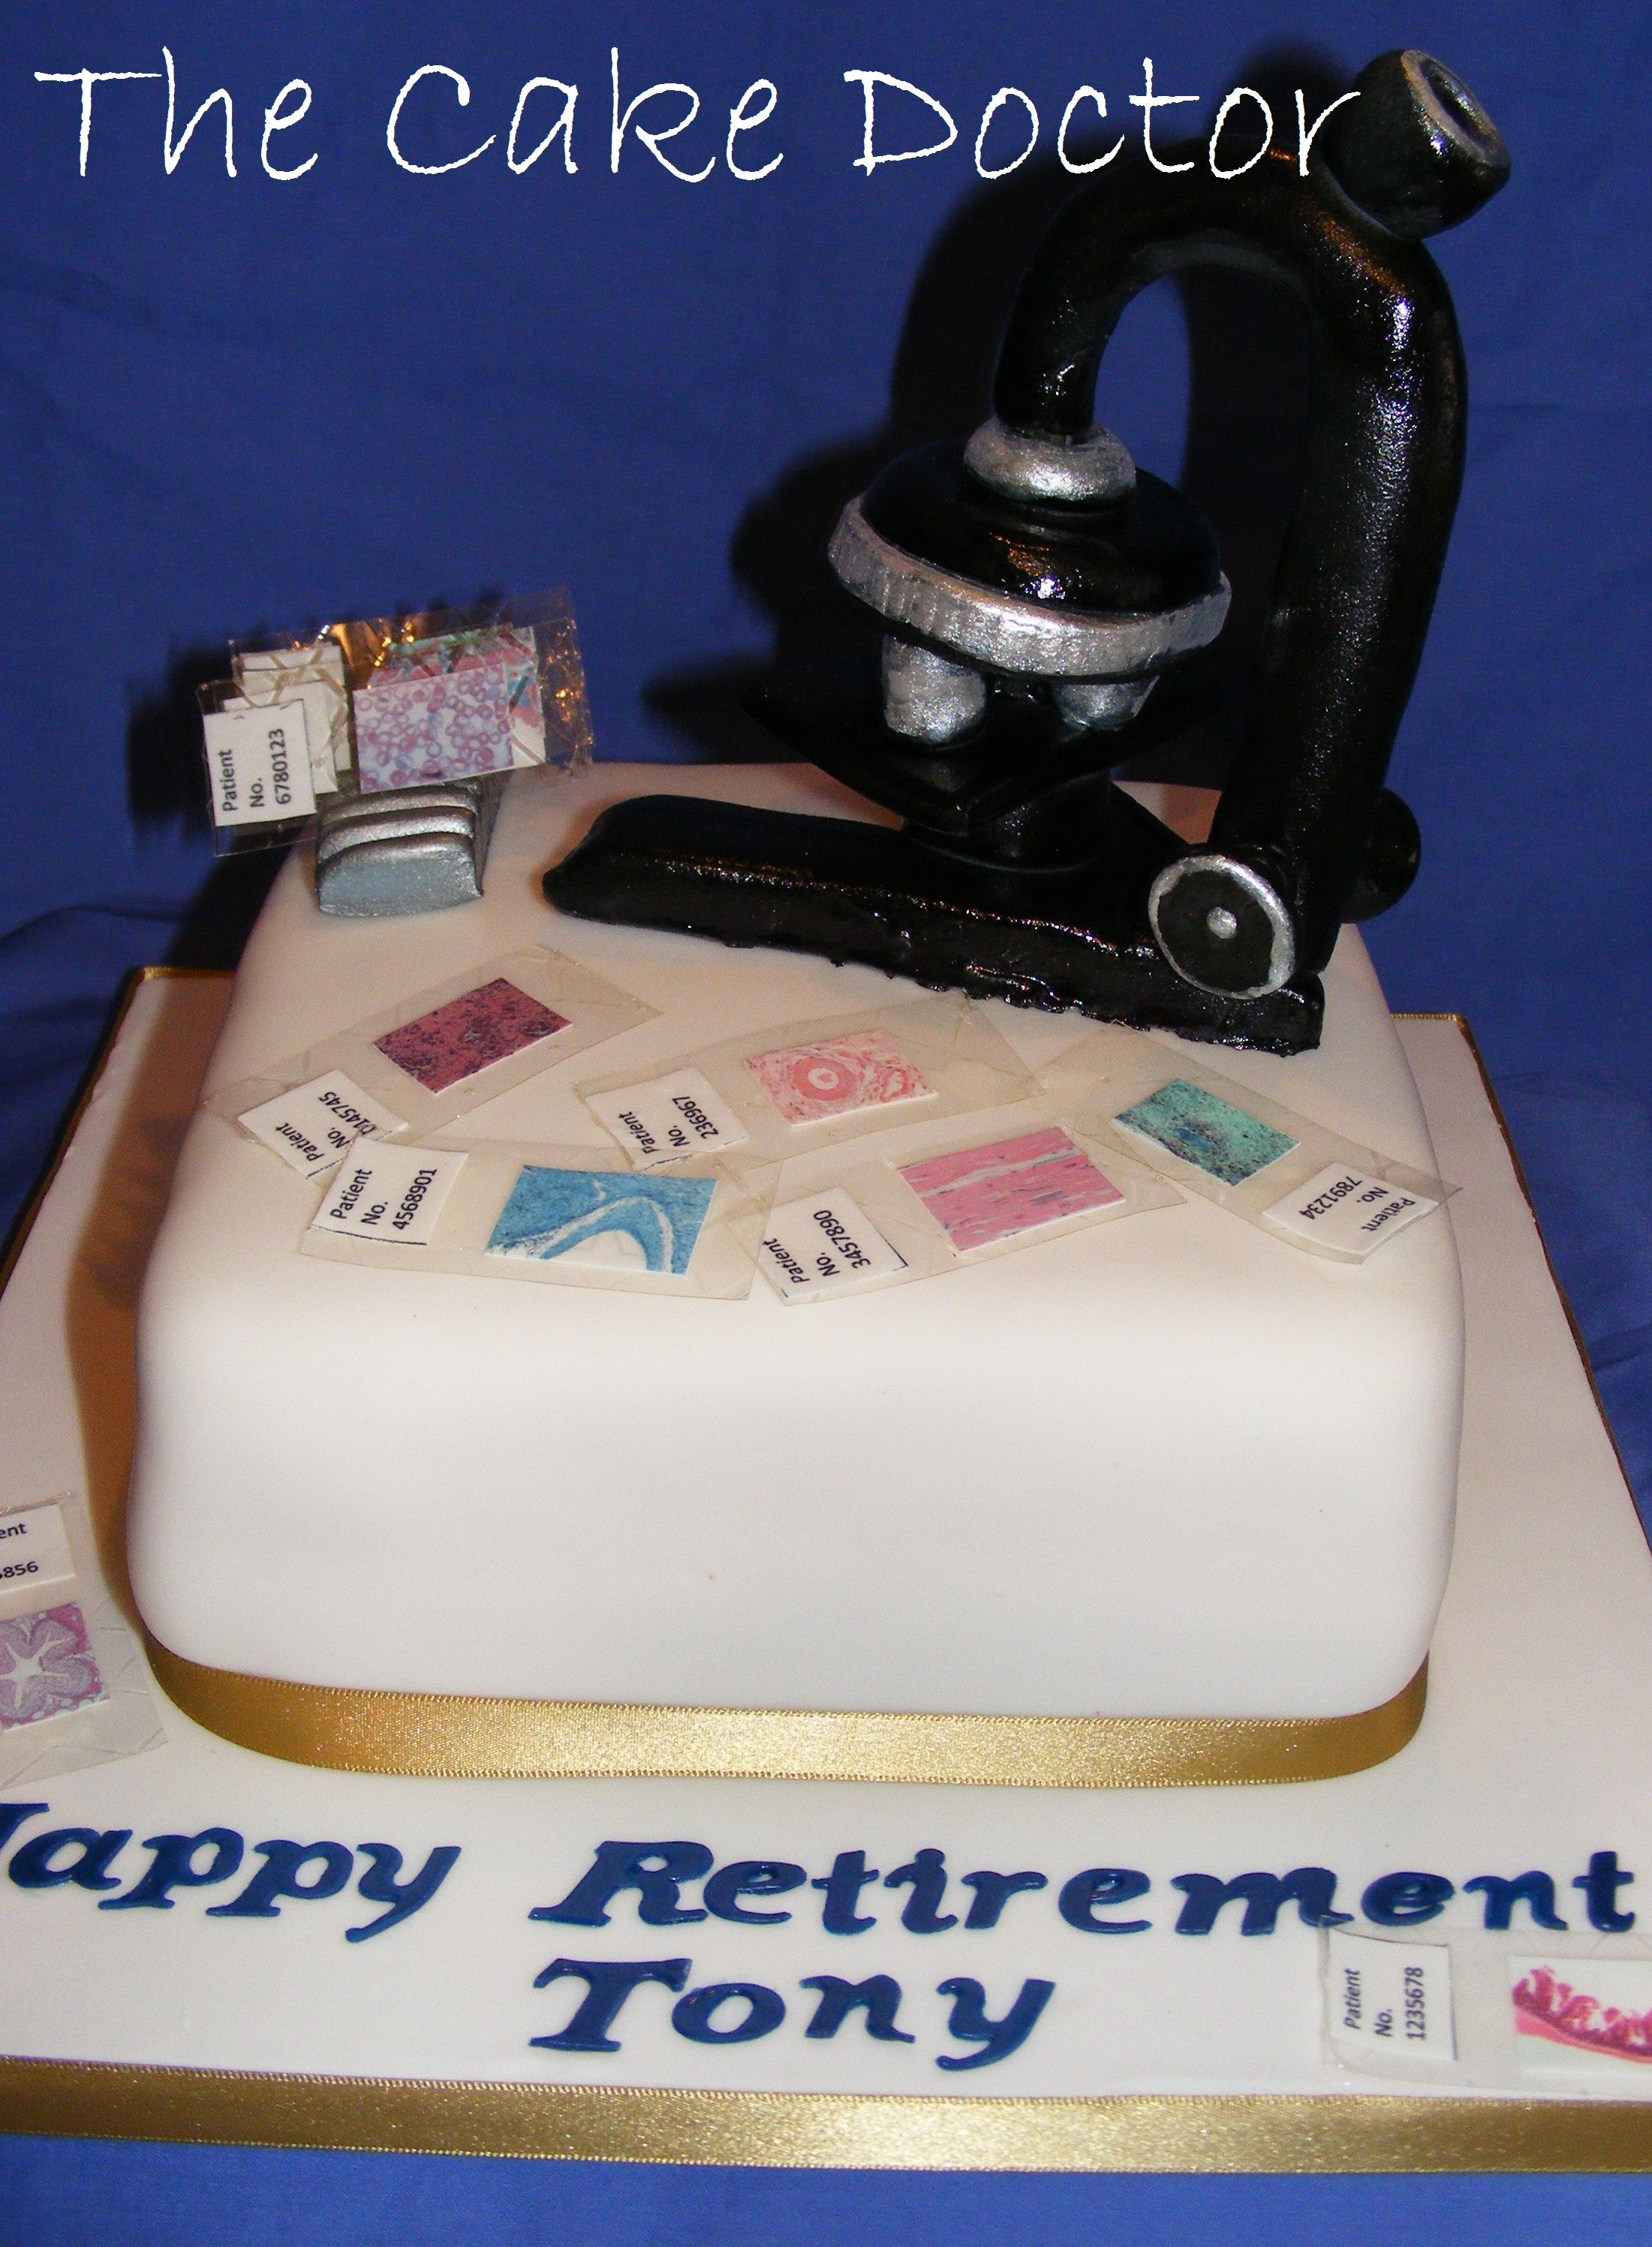 Histology retirement cake complete with handmade microscope and